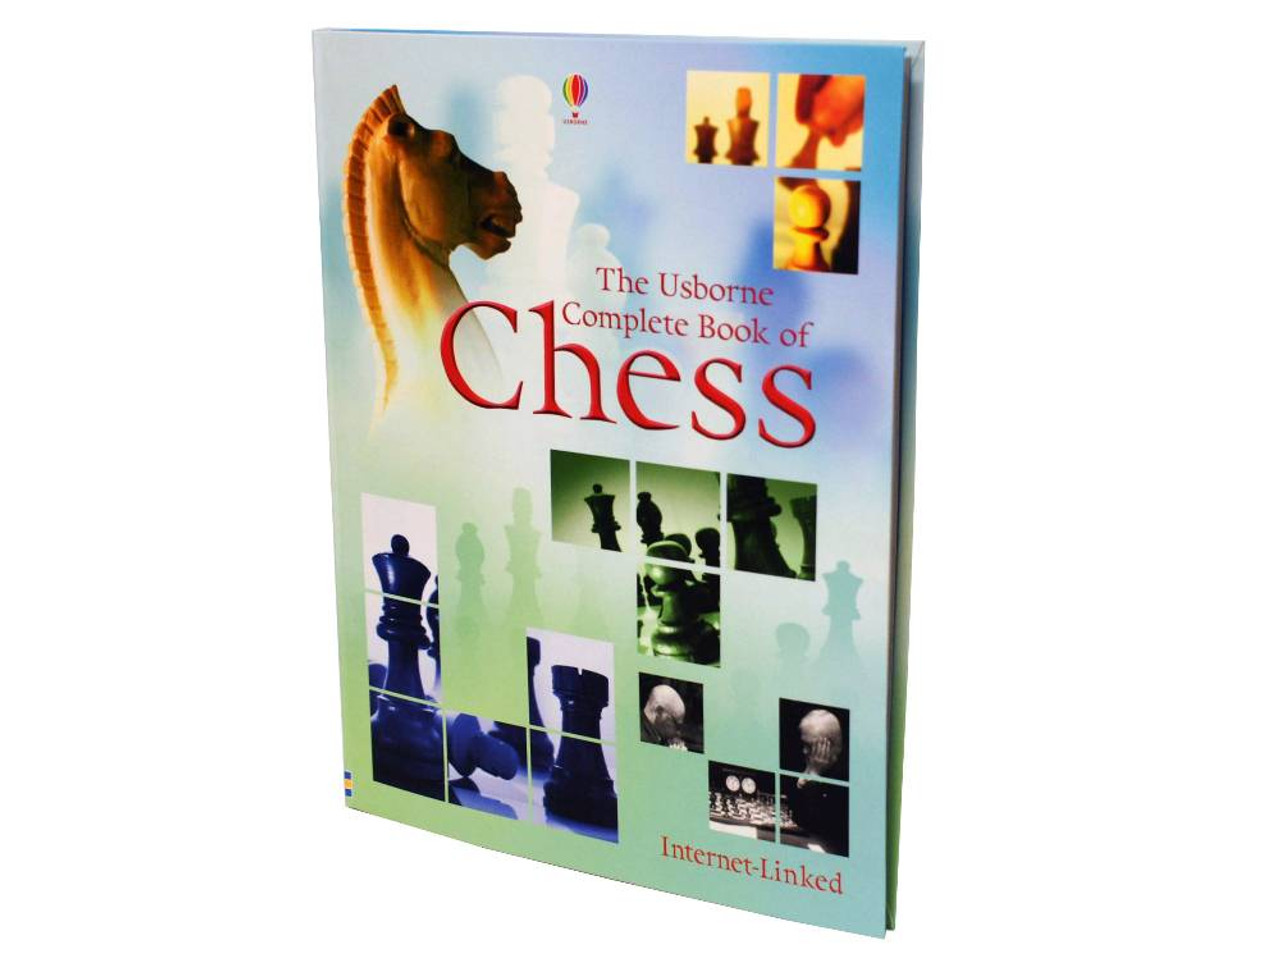 The Usborne Complete Book of Chess (KU253)